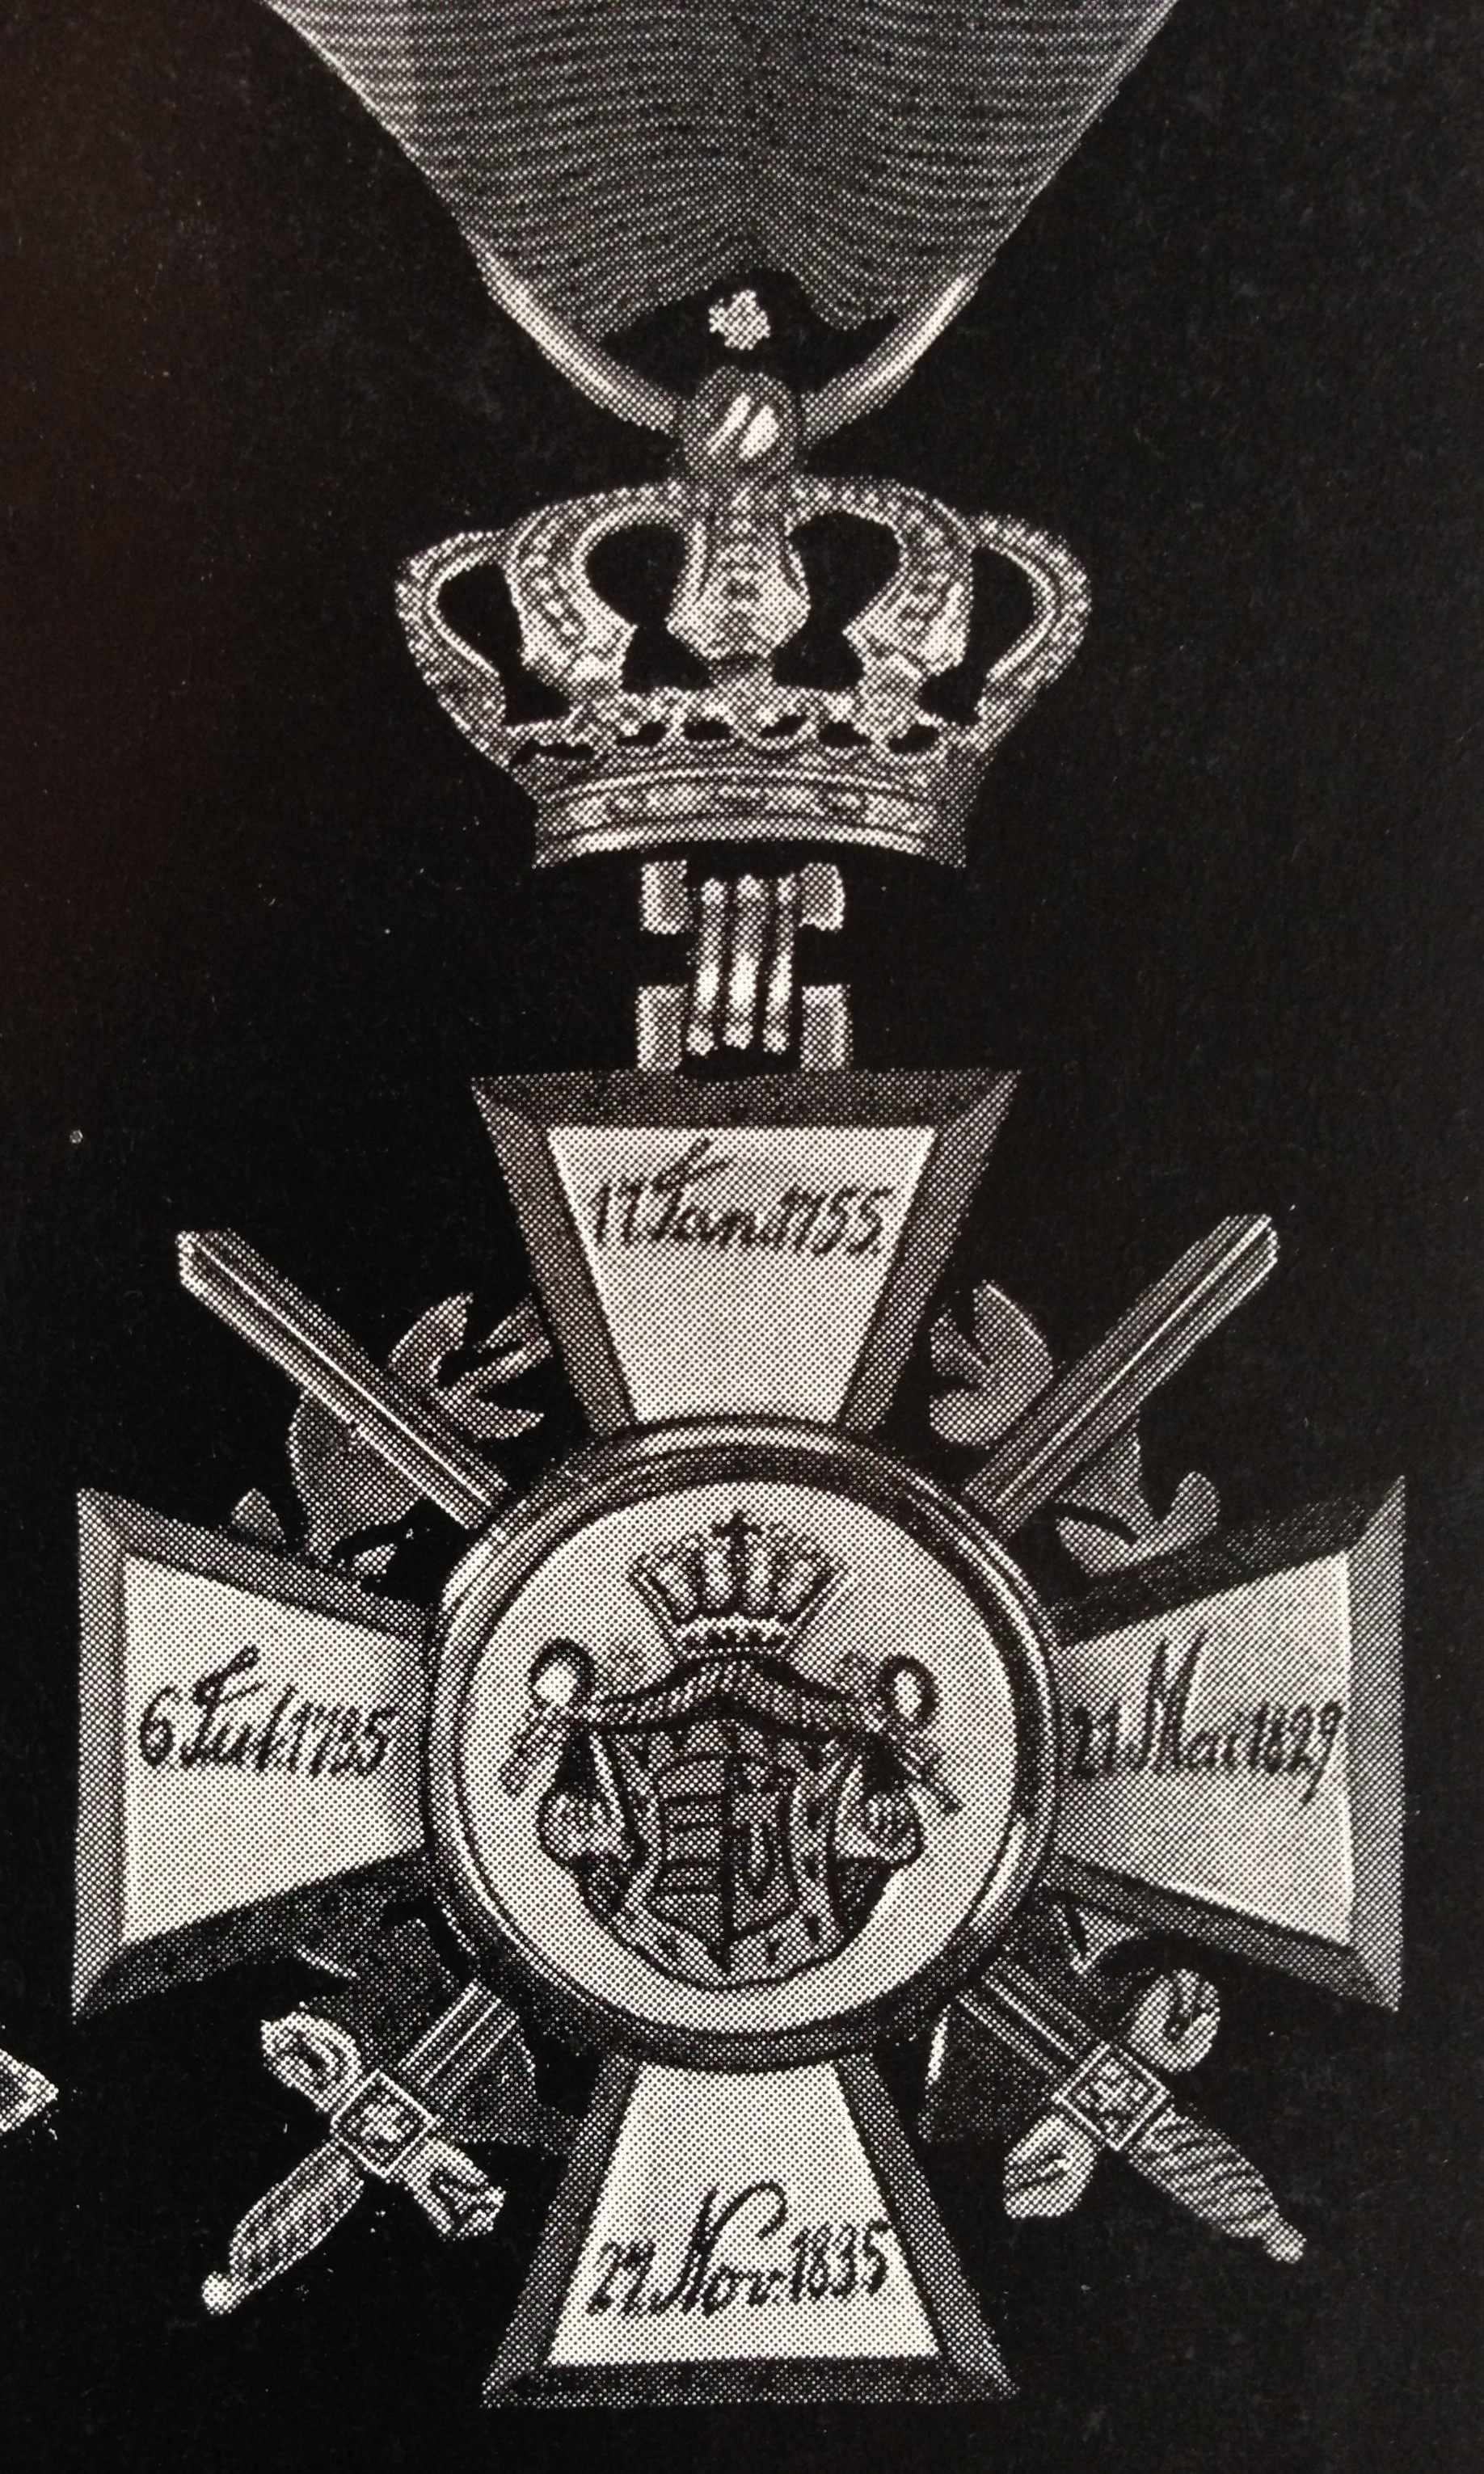 Oldenburg Knight 1st Class with swords and laurel leaf